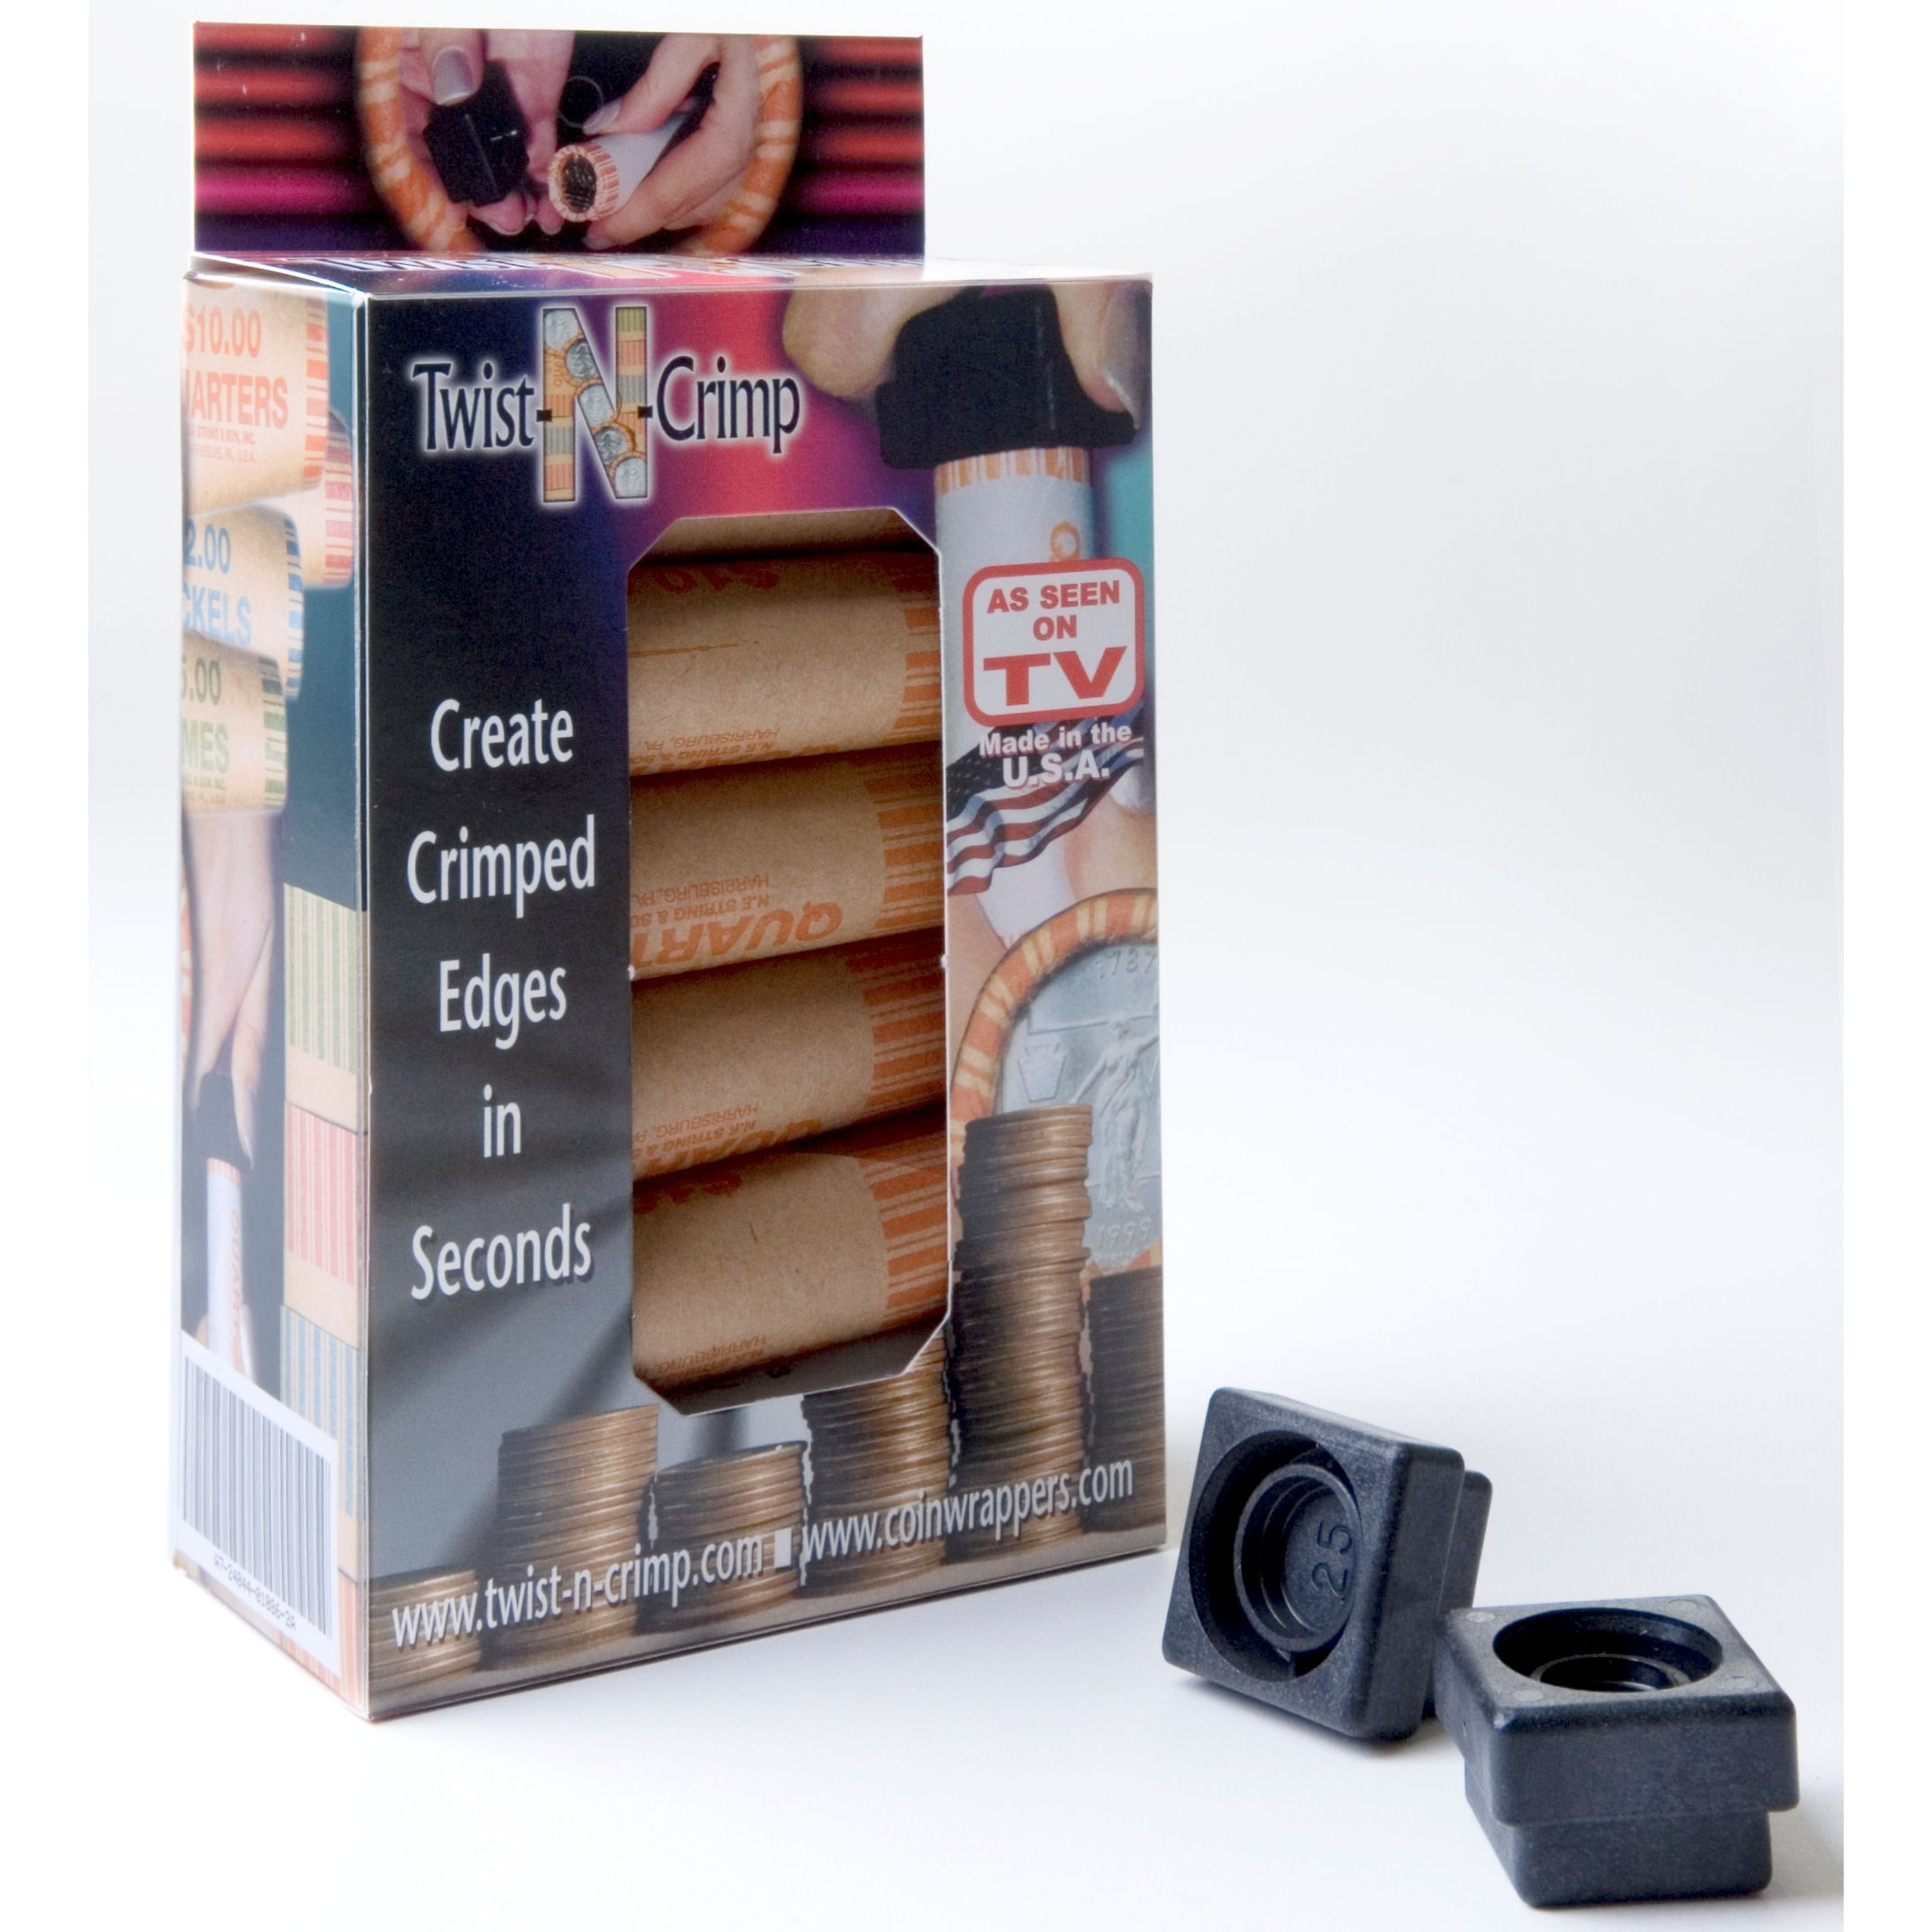 Twist-N-Crimp Cartridge Coin Wrapper Kit